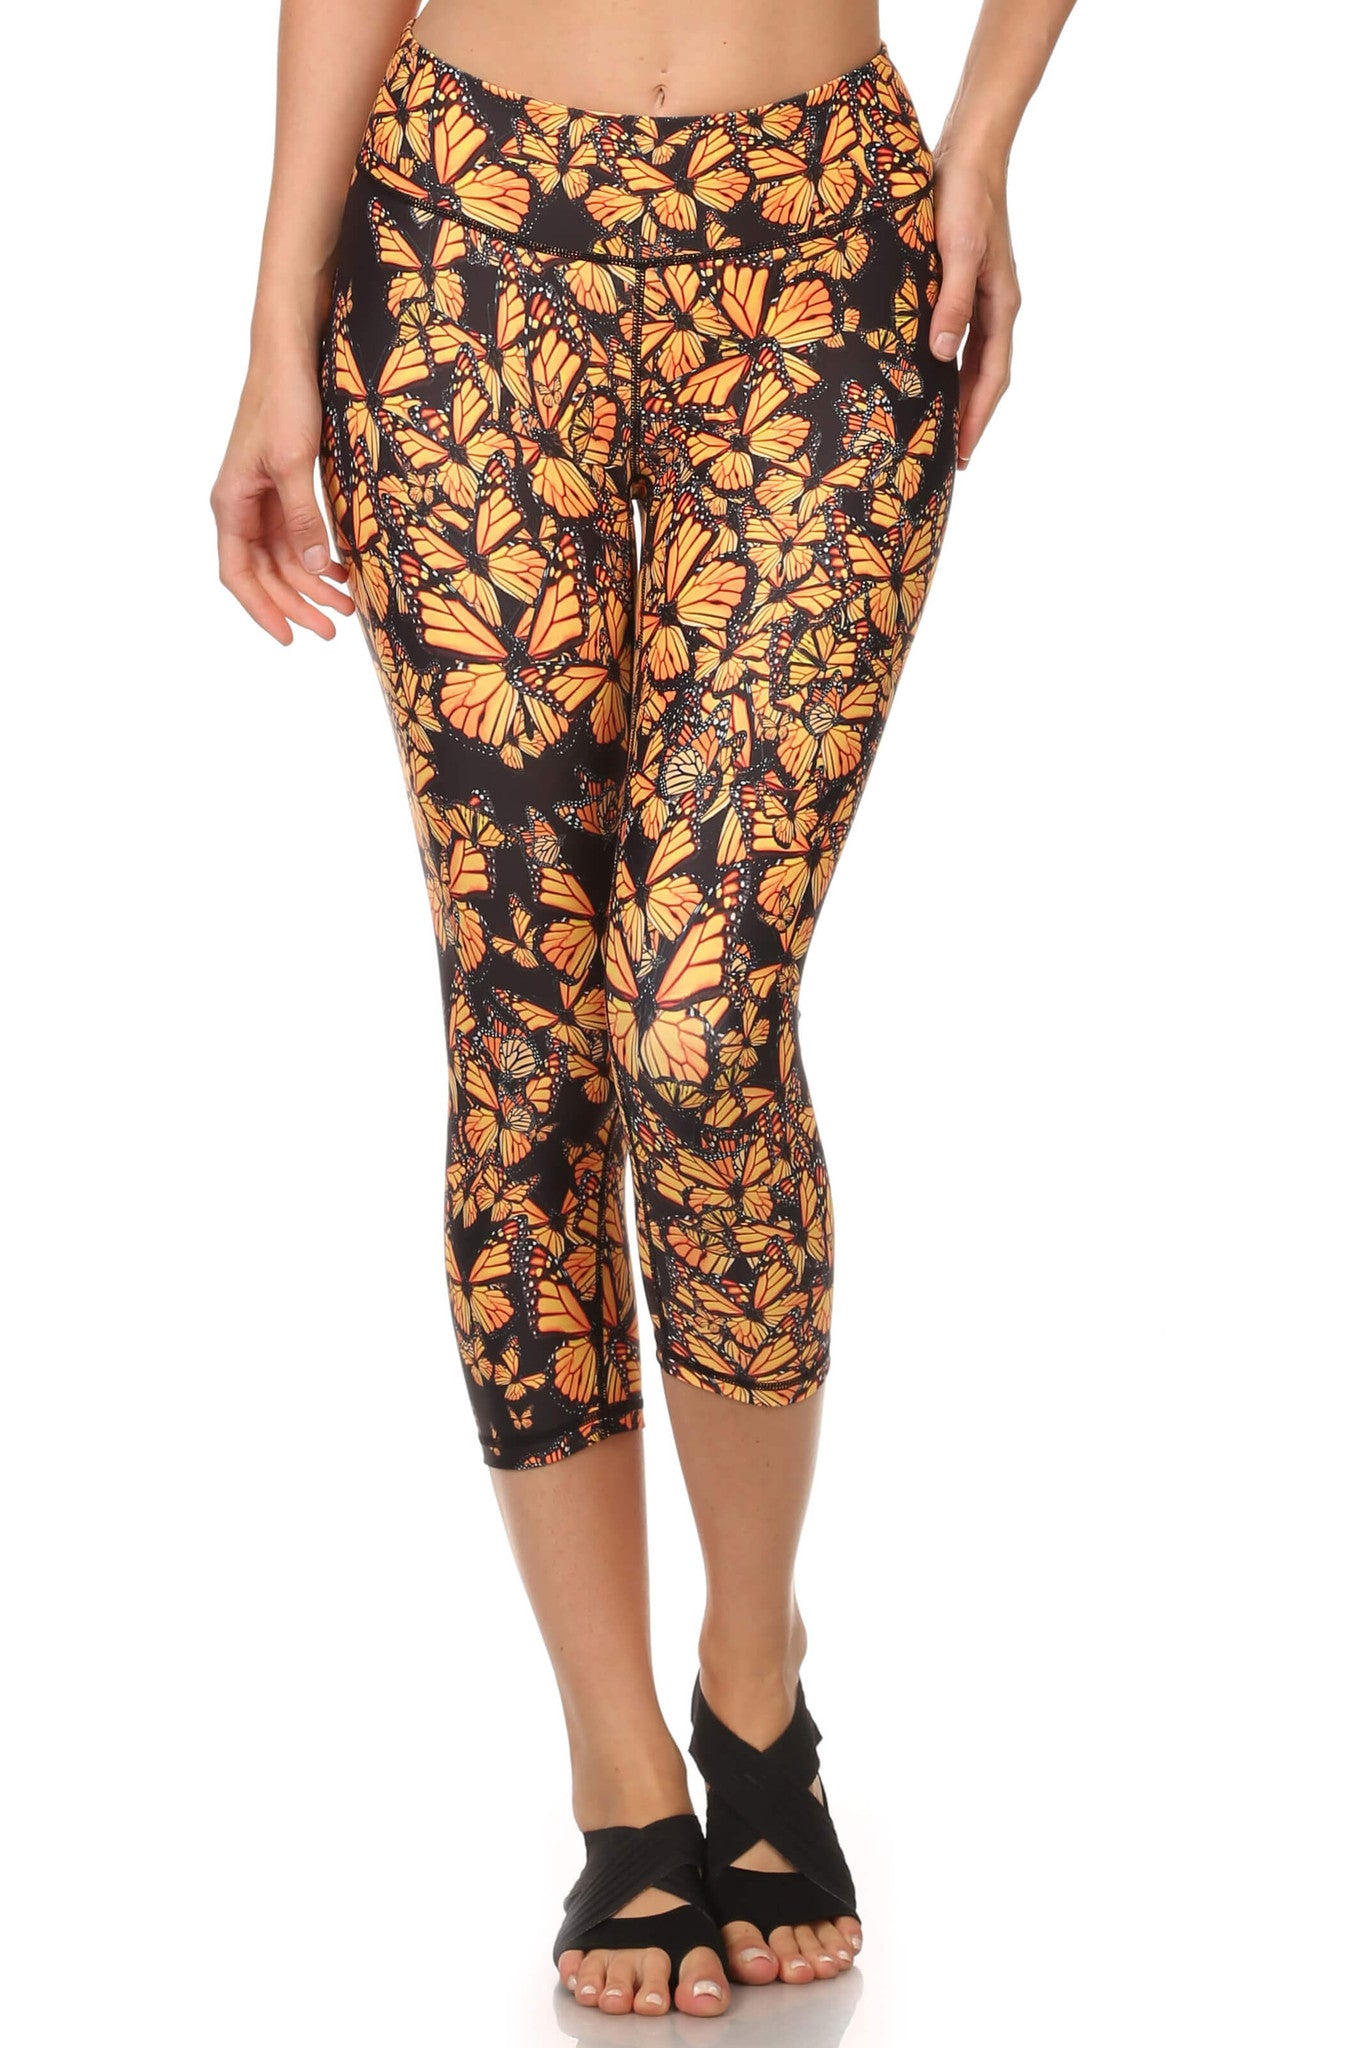 Attack of the Monarchs Dream Capris - POPRAGEOUS  - 1